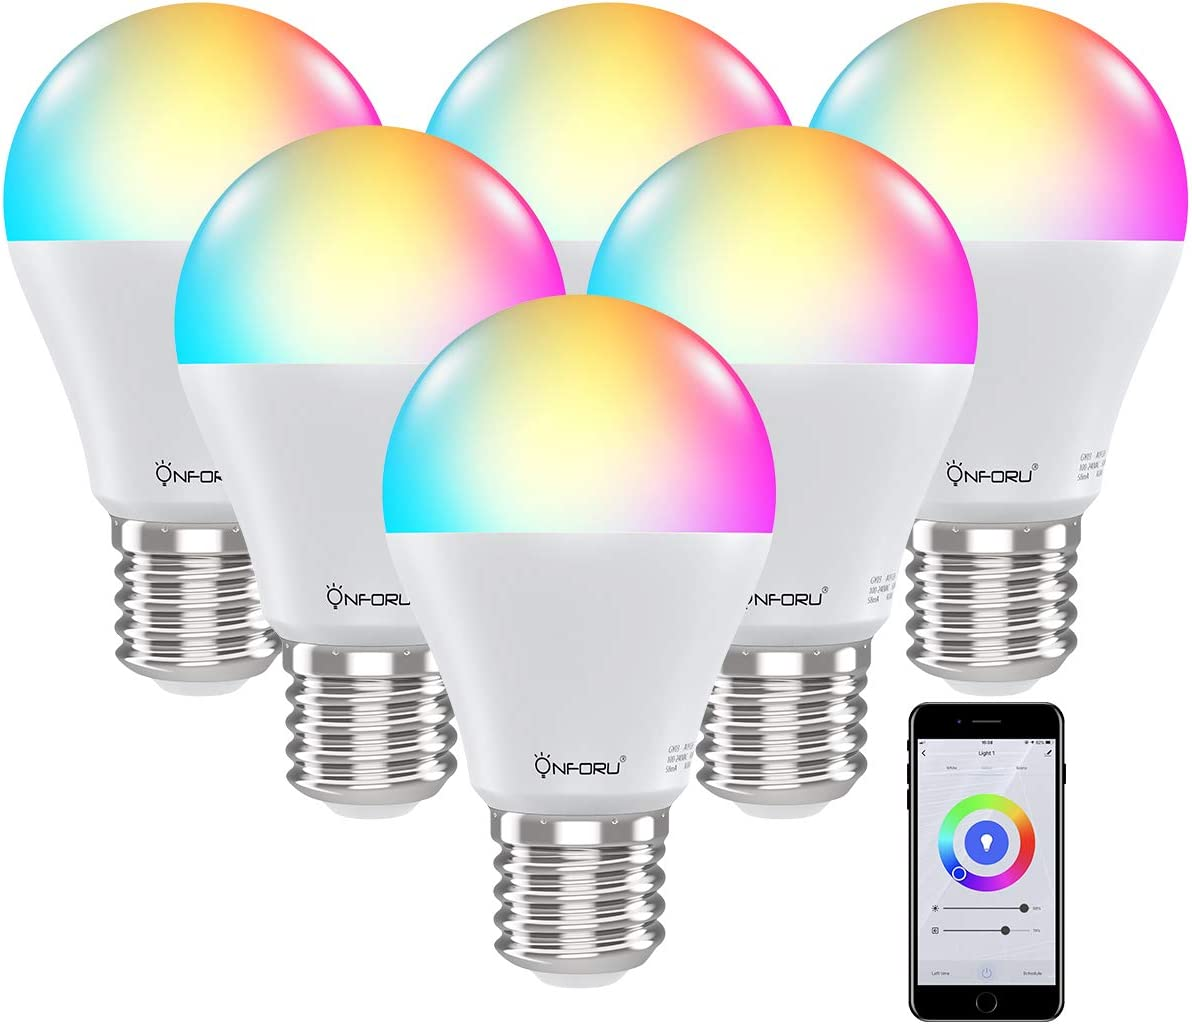 Onforu 6 Pack Smart Light Bulb Work